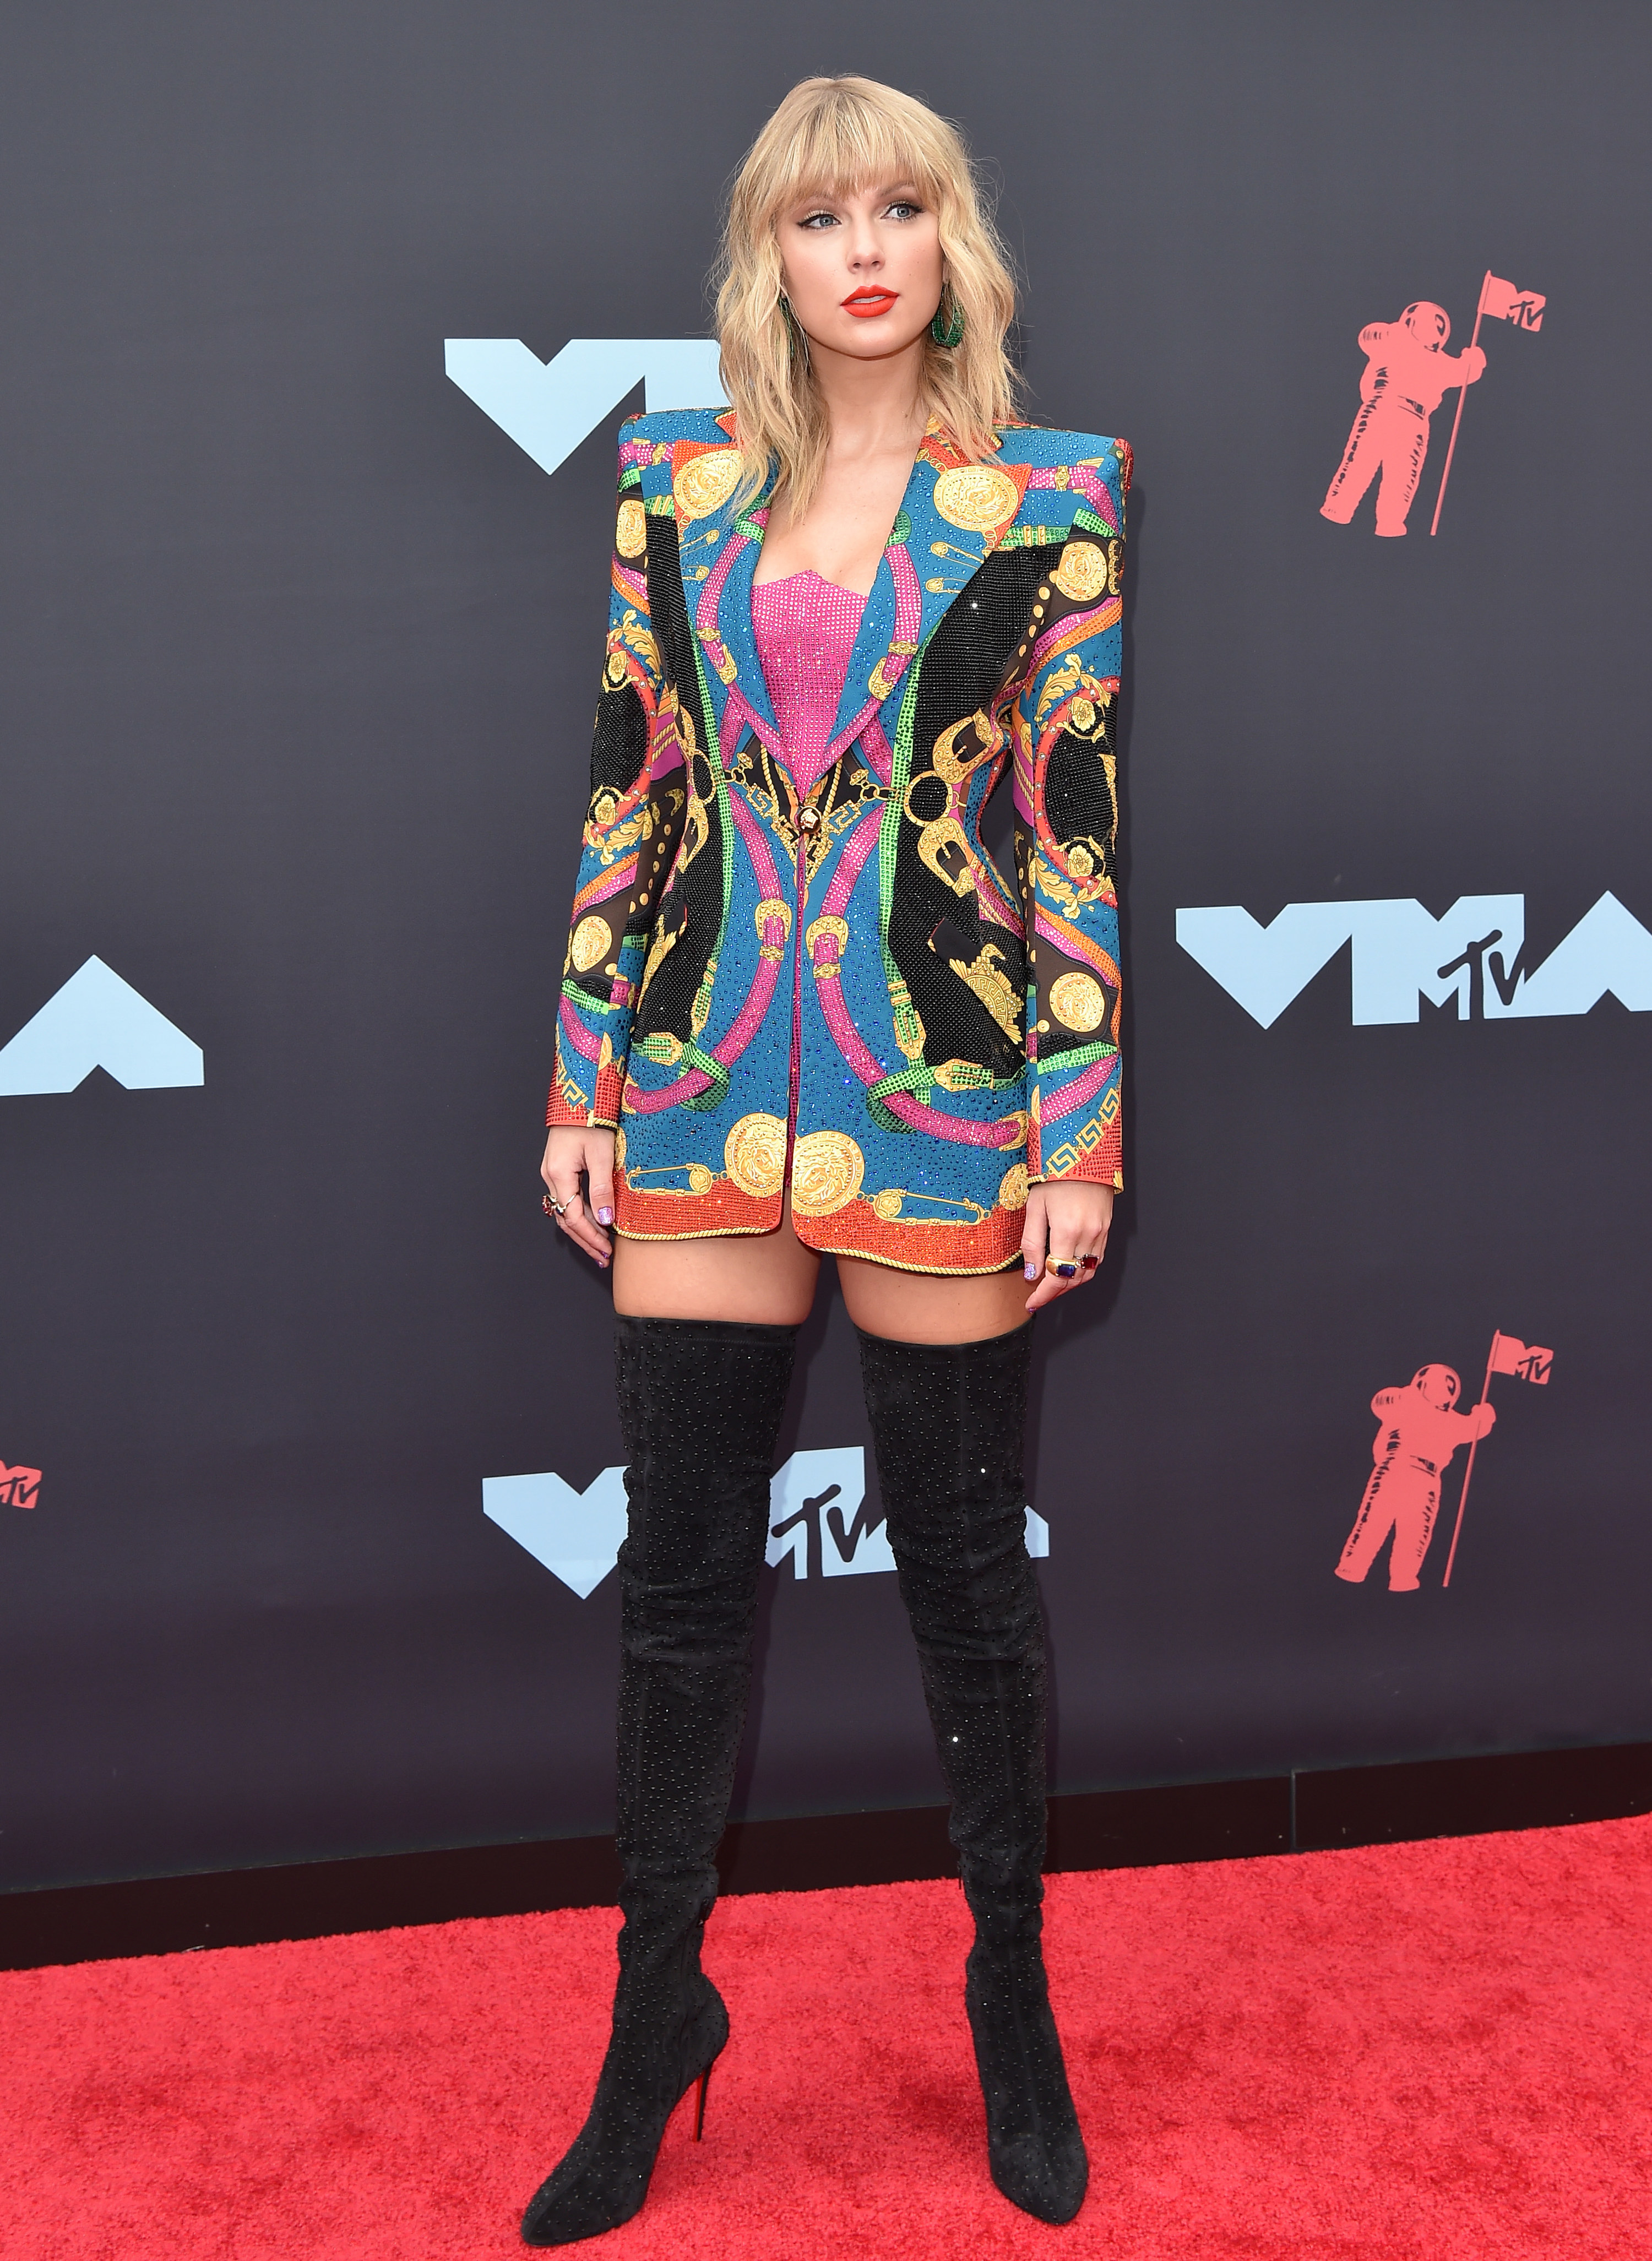 Taylor Swift at the Video Music Awards in 2019